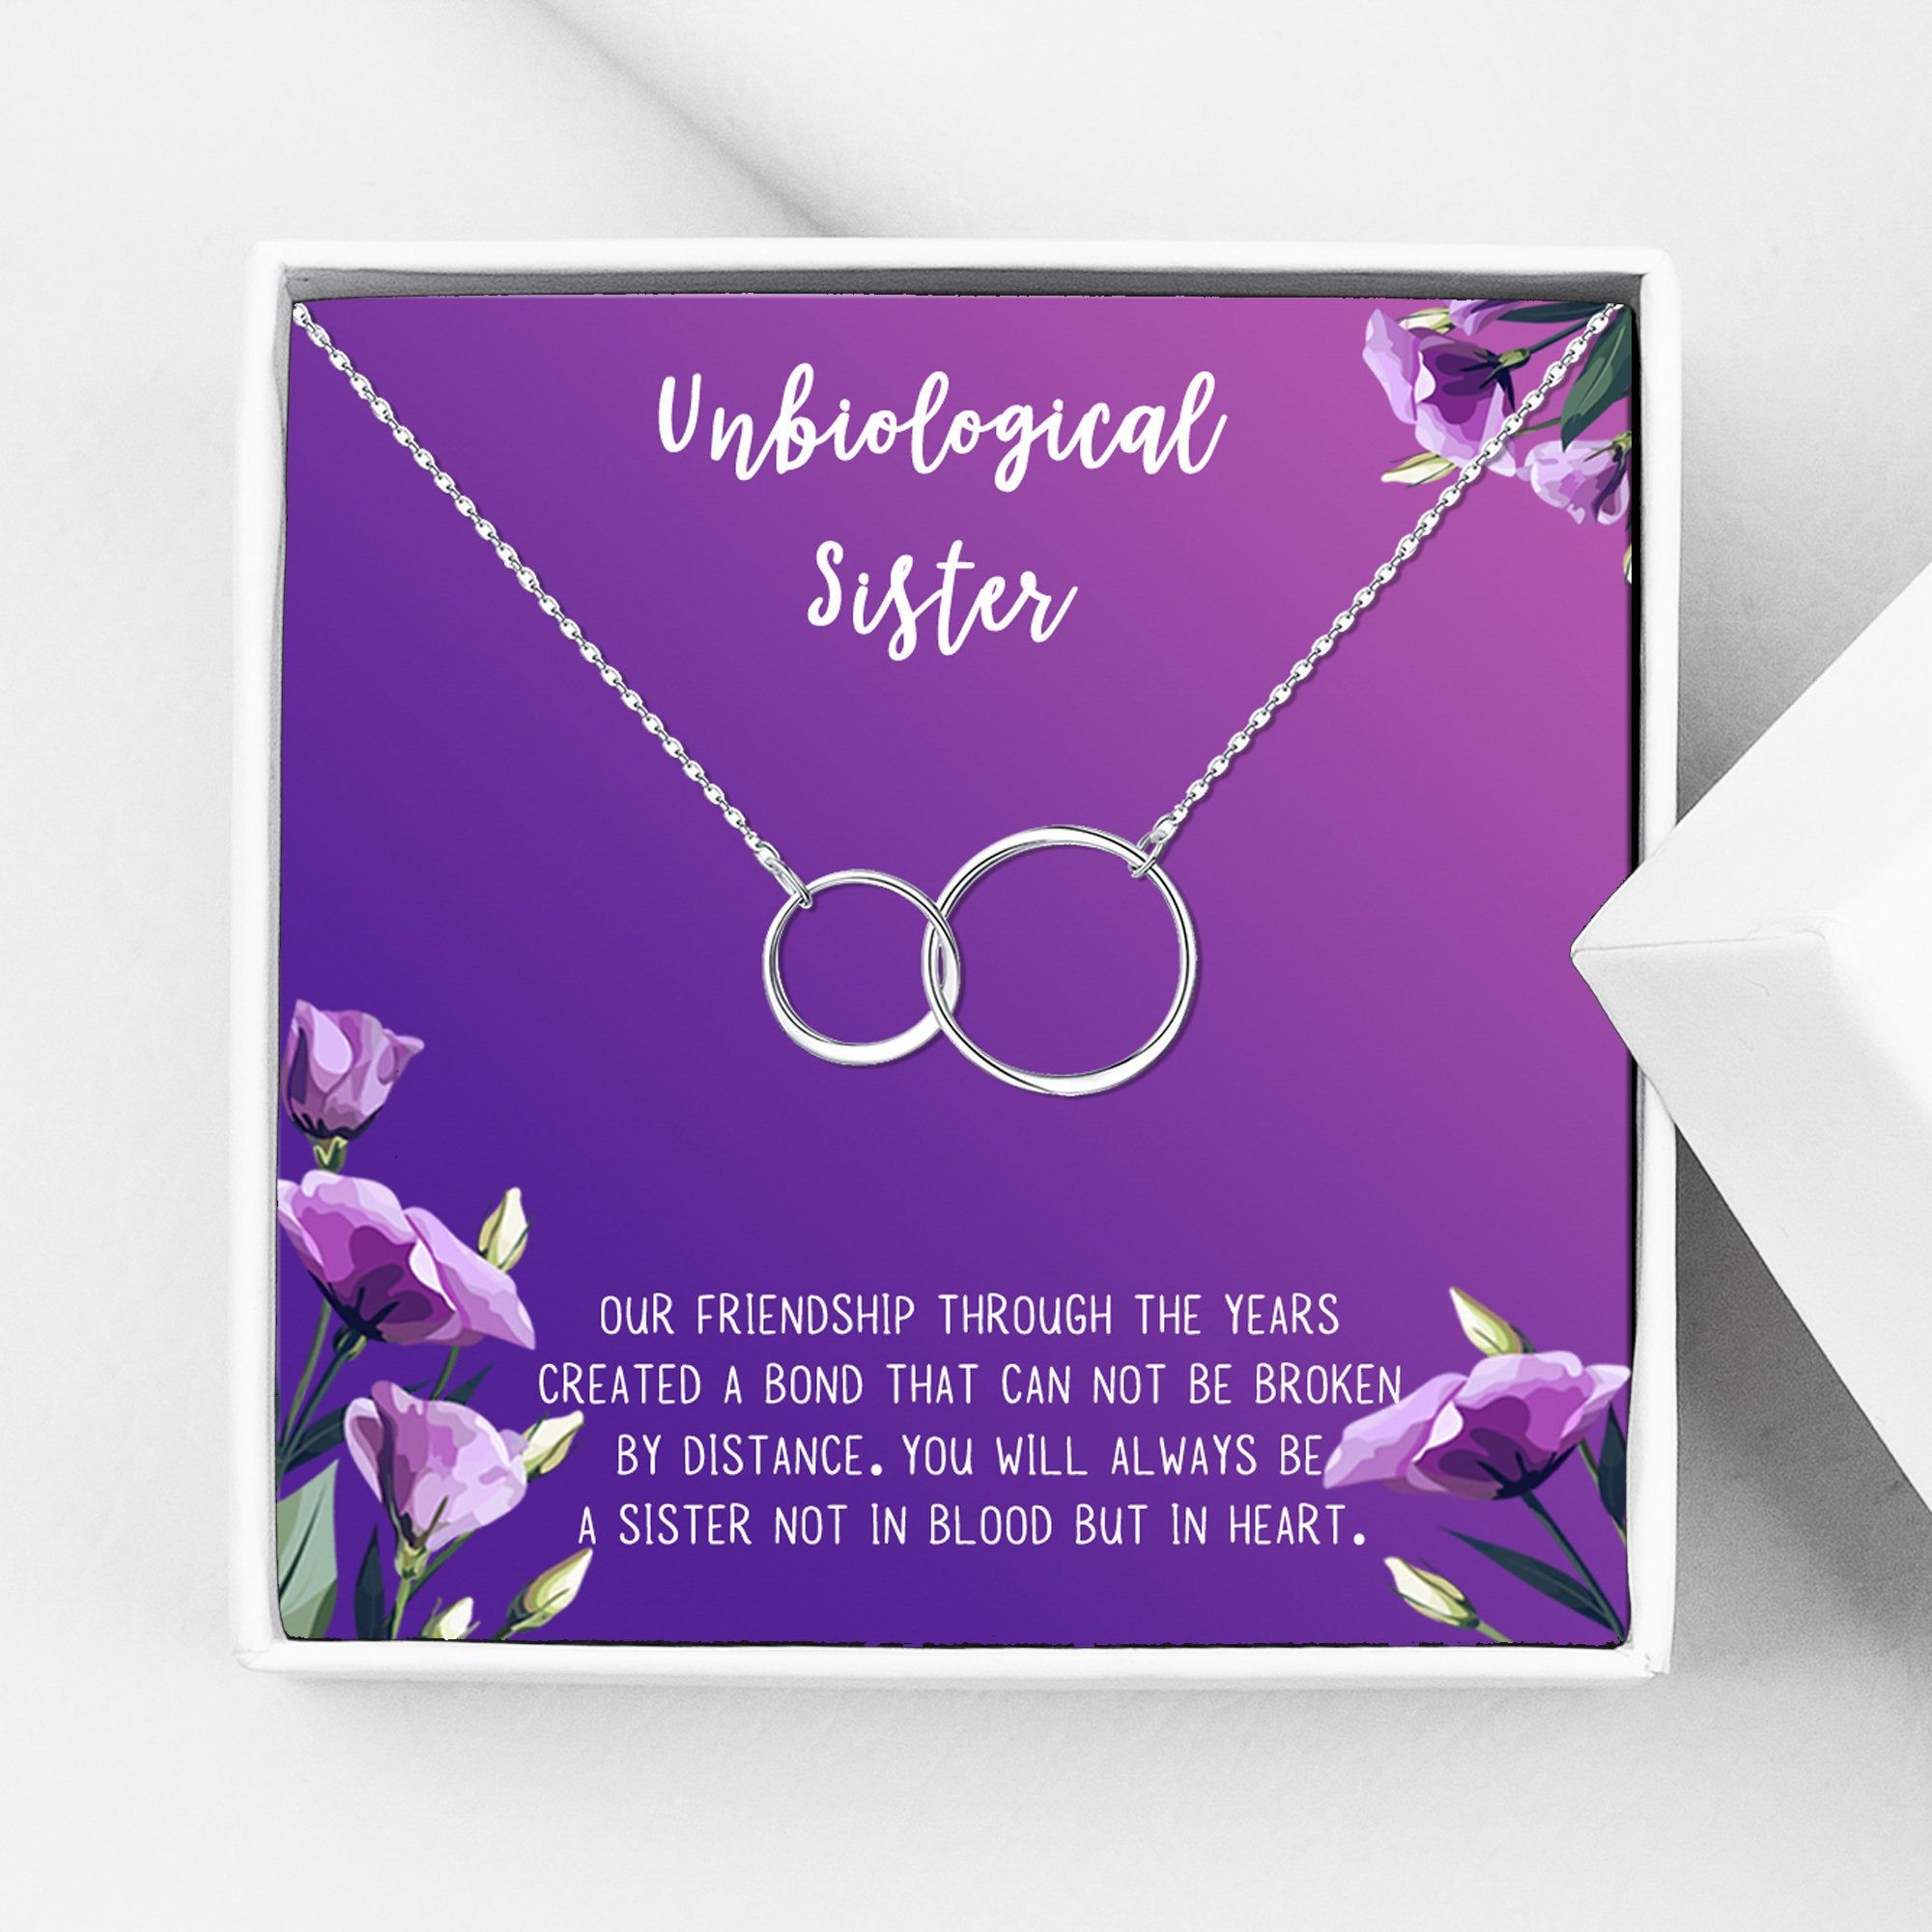 soul sister jewelry female friend gift soul sister necklace unbiological sister long distance friend bff soul sister best friend gift